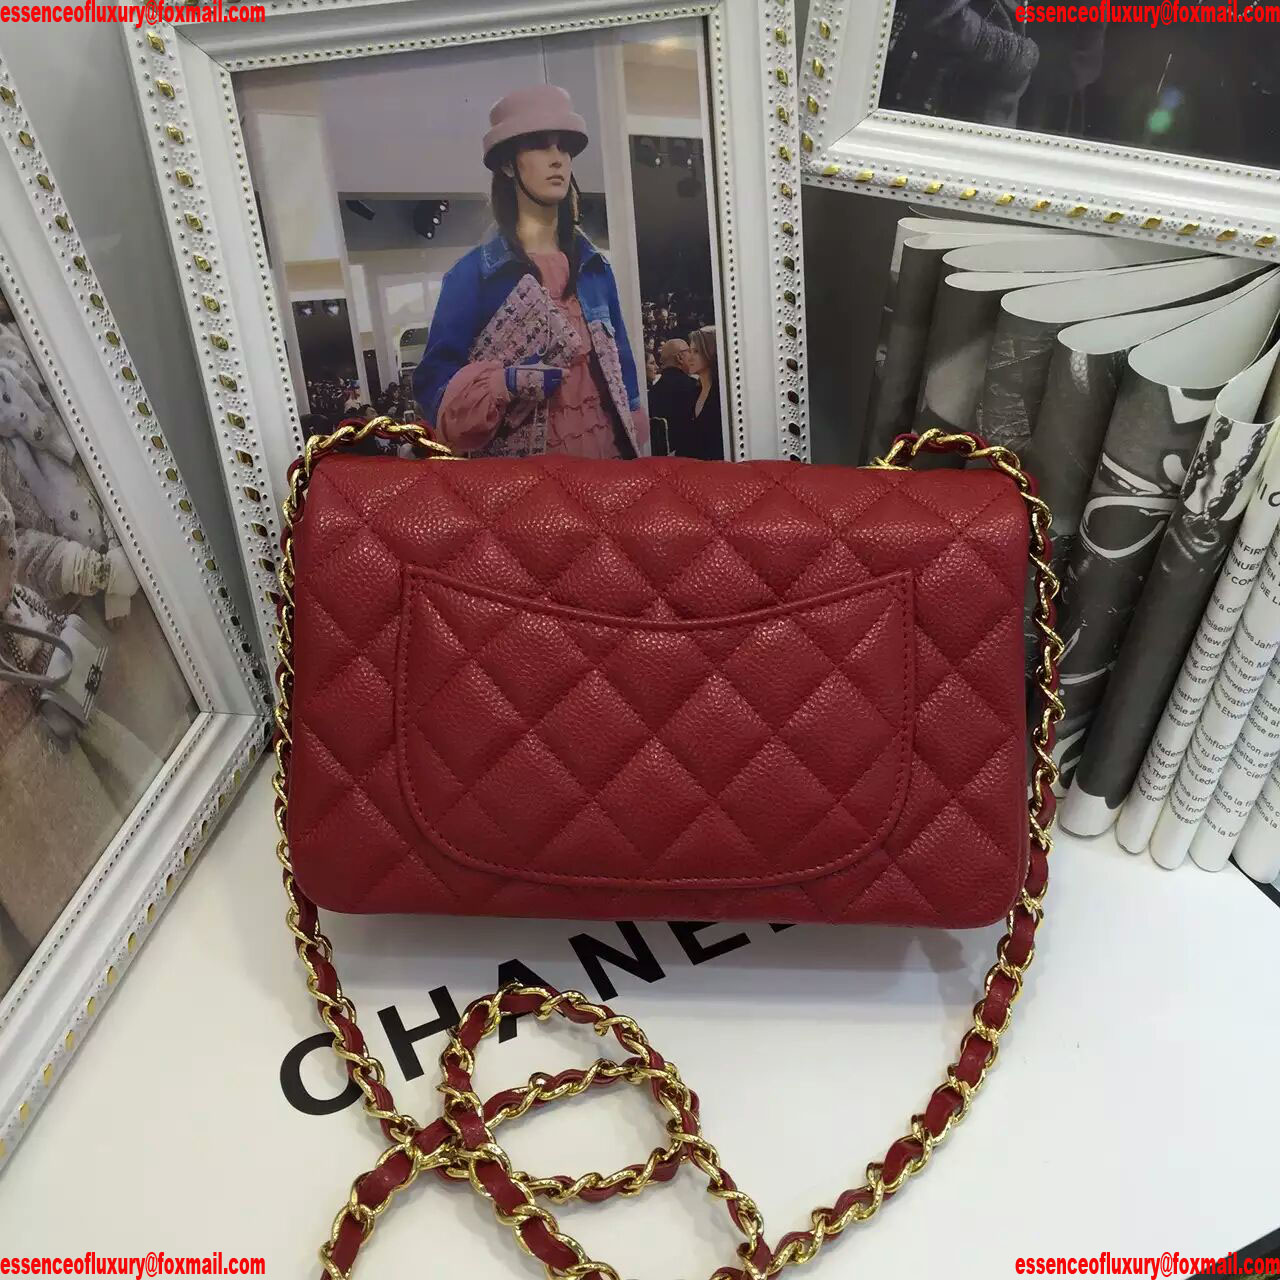 1586f7ecb5ea CHANEL SMALL LEATHER FLAP BAGS · Lux Shoe Addict · Online Store ...